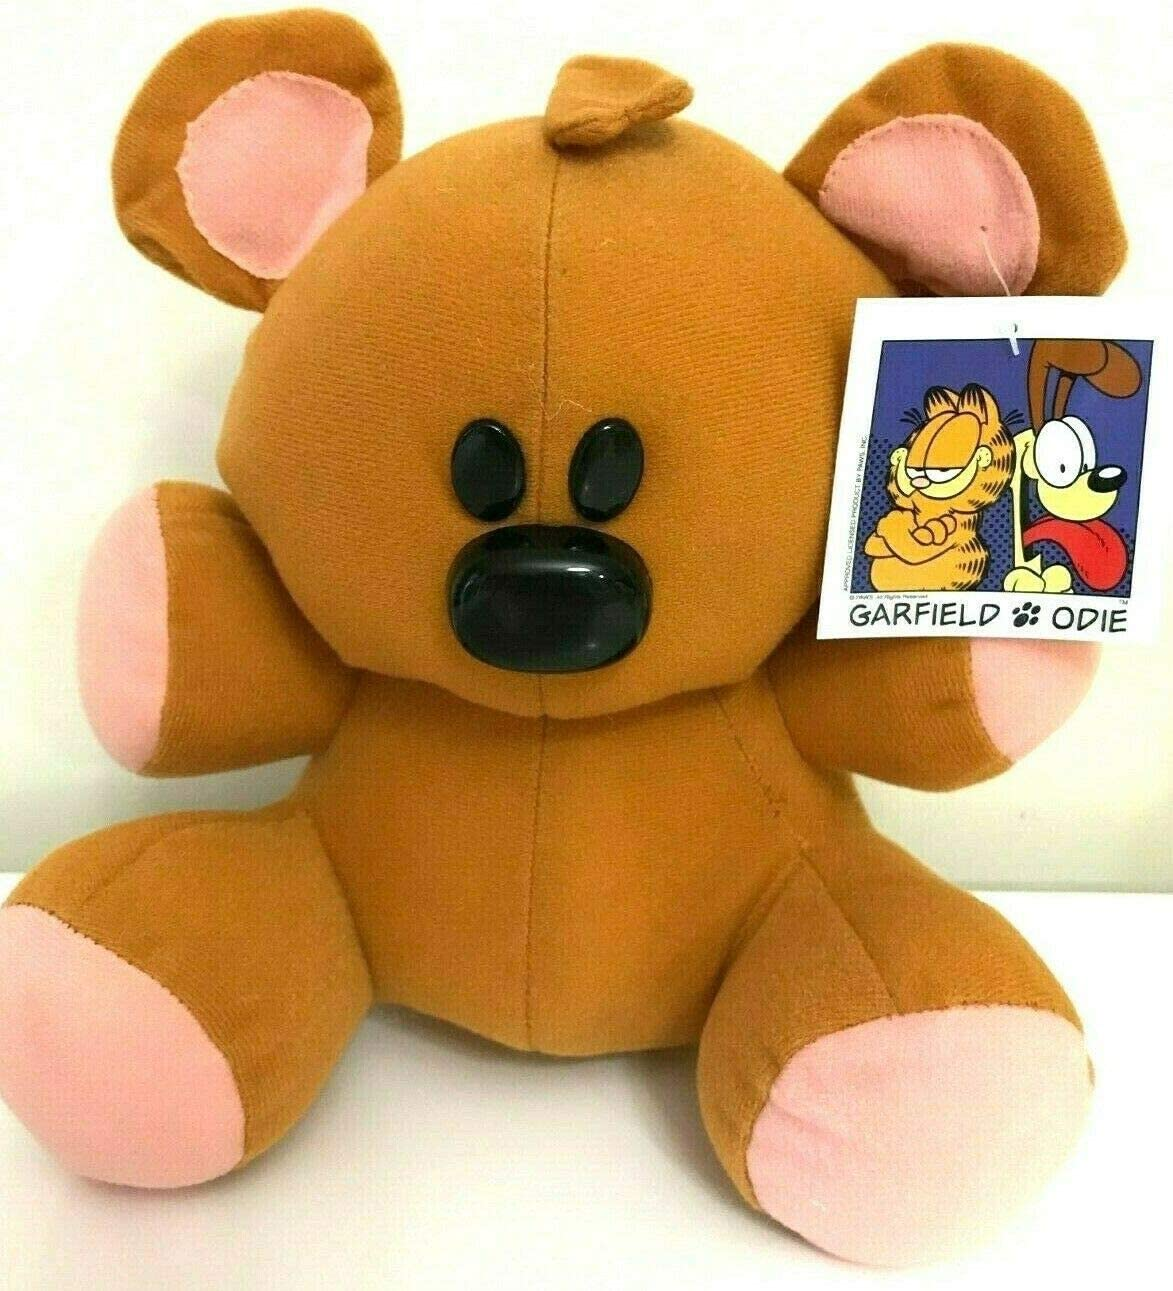 Amazon Com Pooky The Teddy Bear Plush Toy Garfield And Friends Stuffed Characters Toys Games